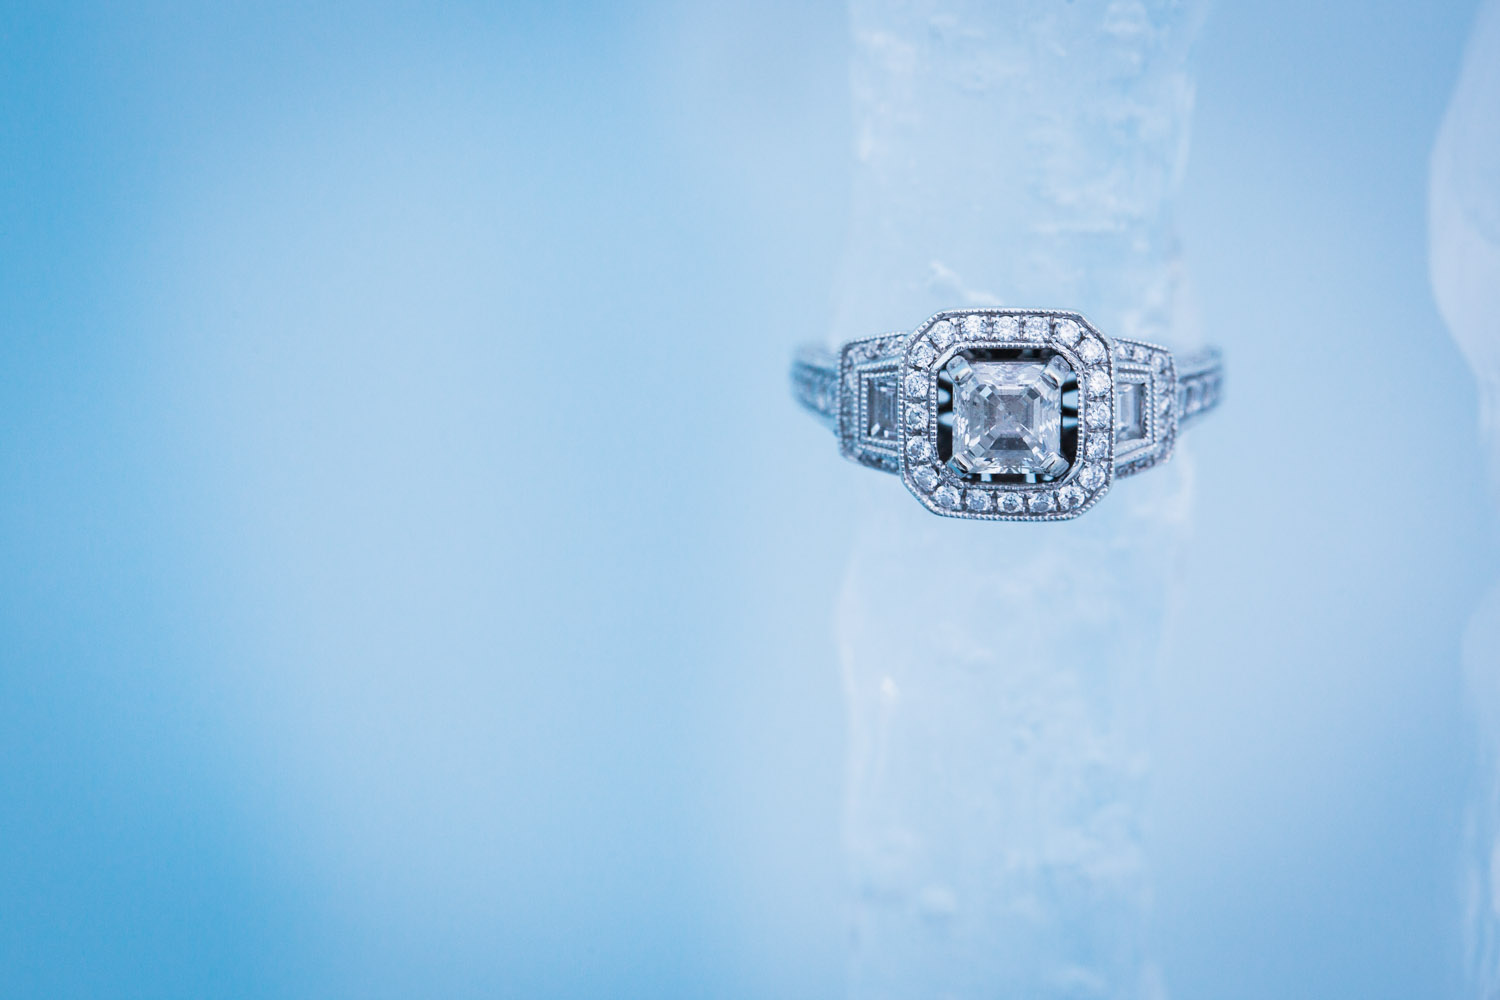 ice-castles-minnesota-stillwater-mn-engagement-ring-detail-shot-winter-icicles-mahonen-photography.jpg